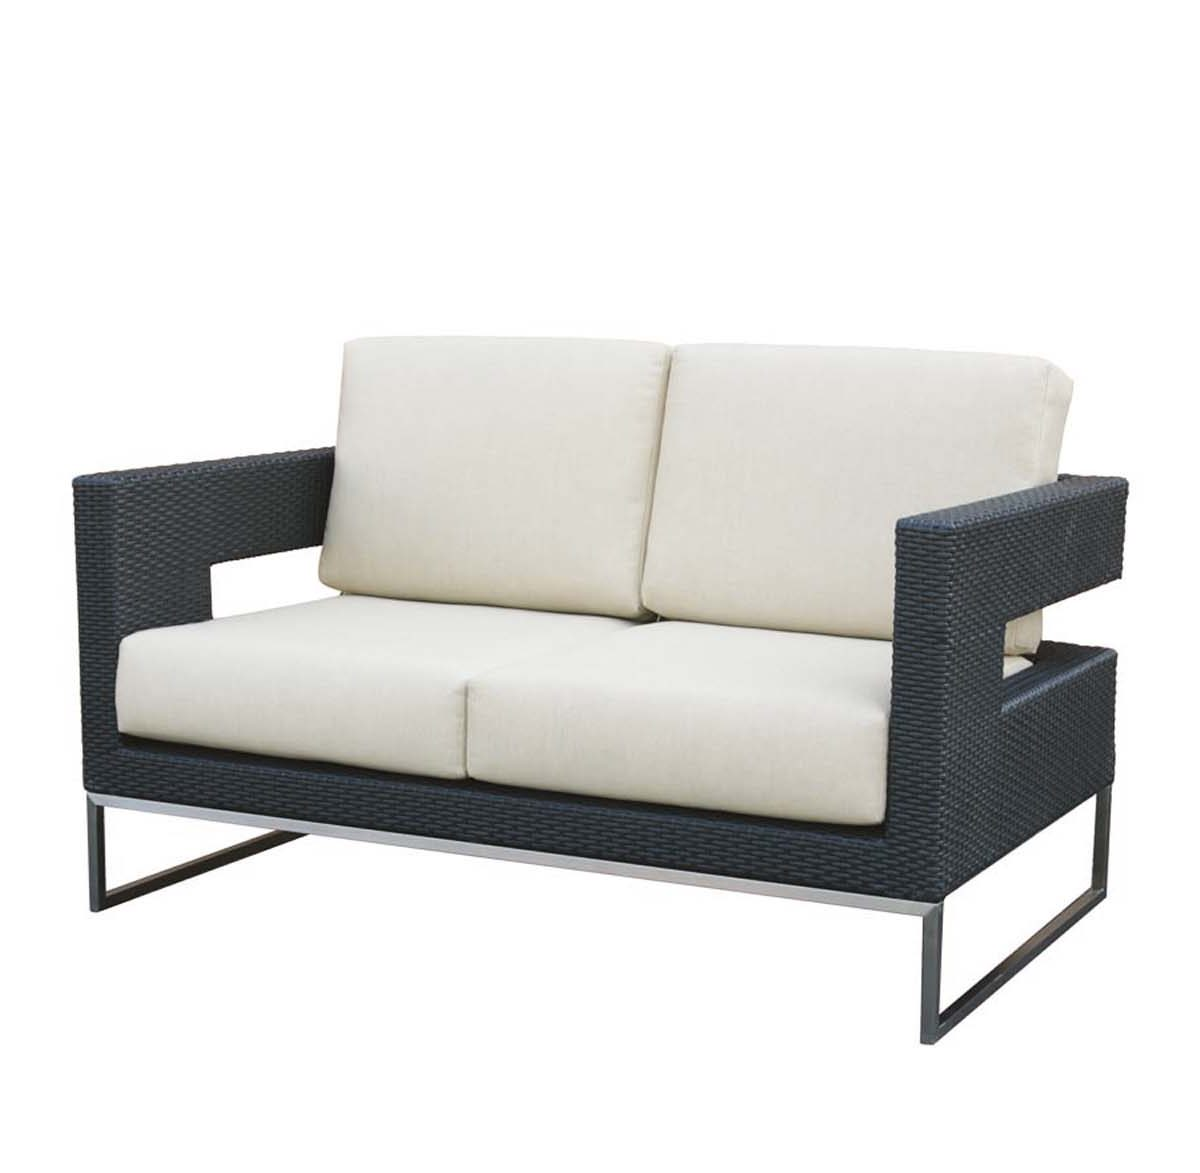 The Vilano love seat Ratana with black frame, steel legs and cream colored cushions.